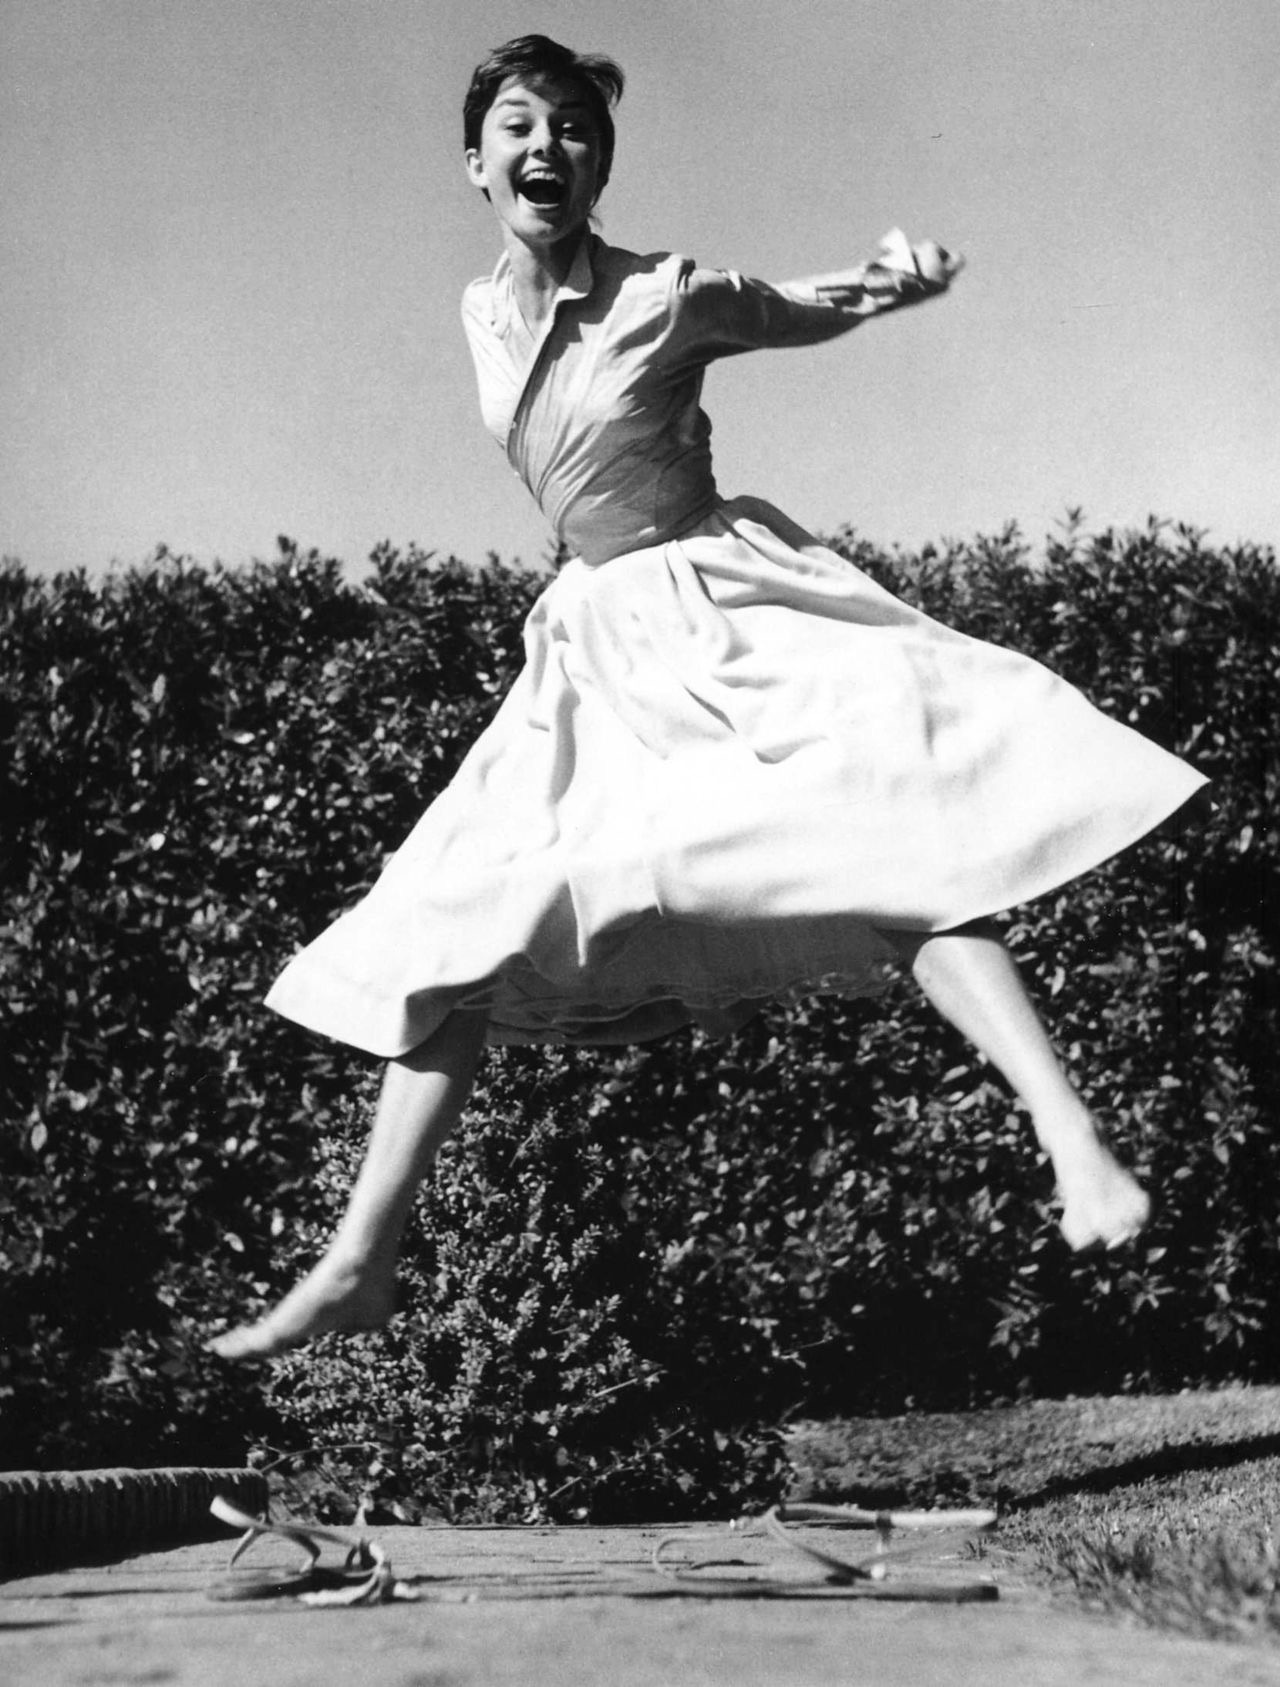 Audrey Hepburn jumps for joy. Photo by Philippe Halsman, 1955.